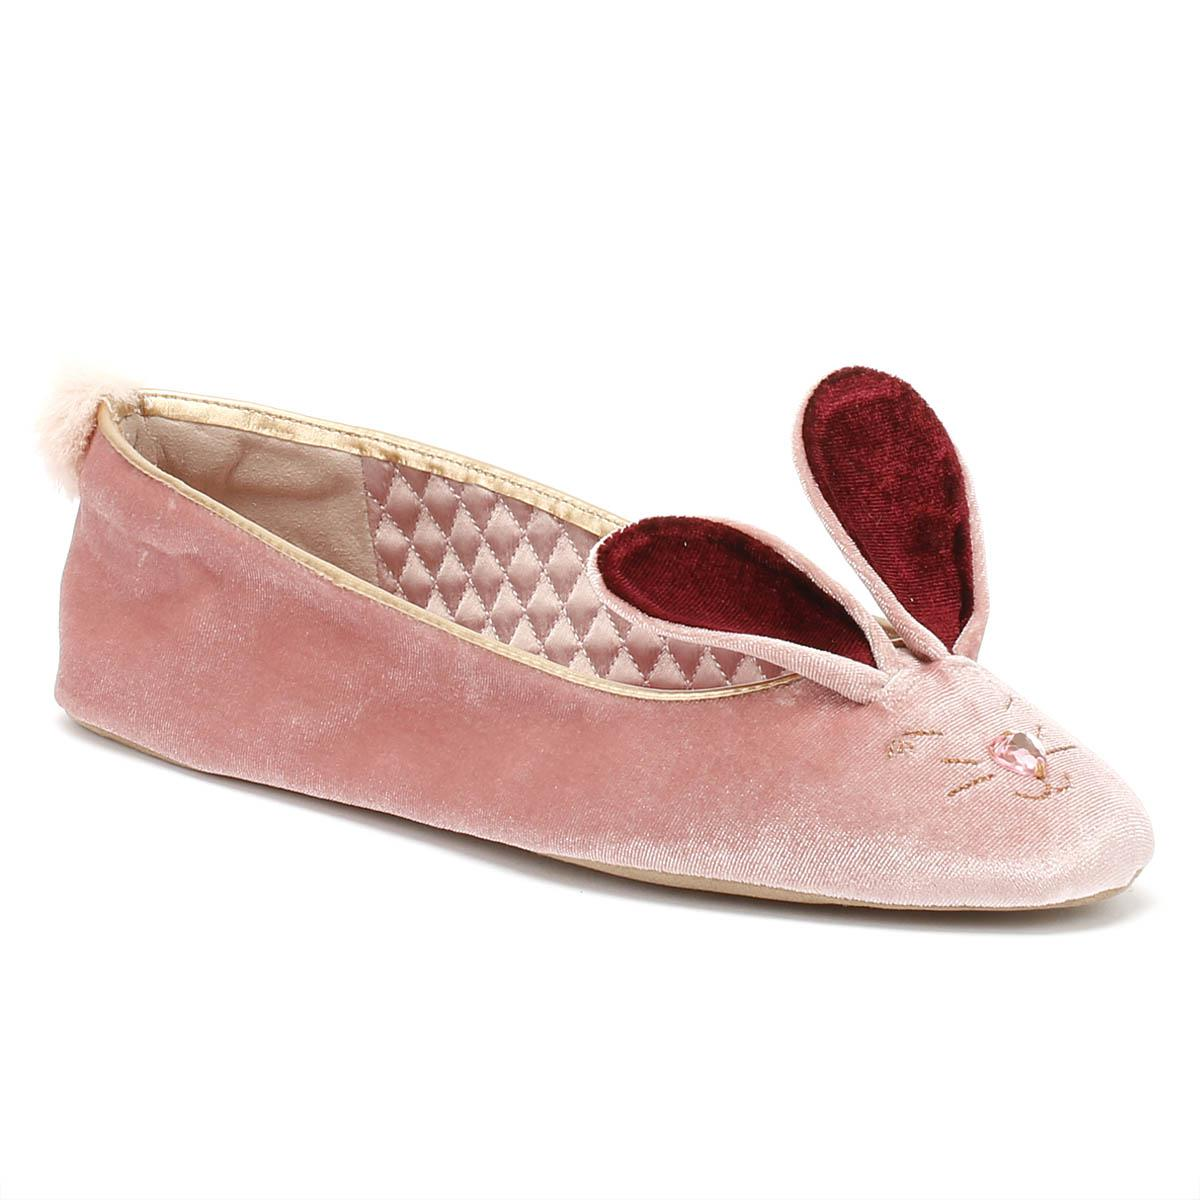 2f83666801dd Lyst - Ted Baker Bhunni Womens Rose Slippers in Pink